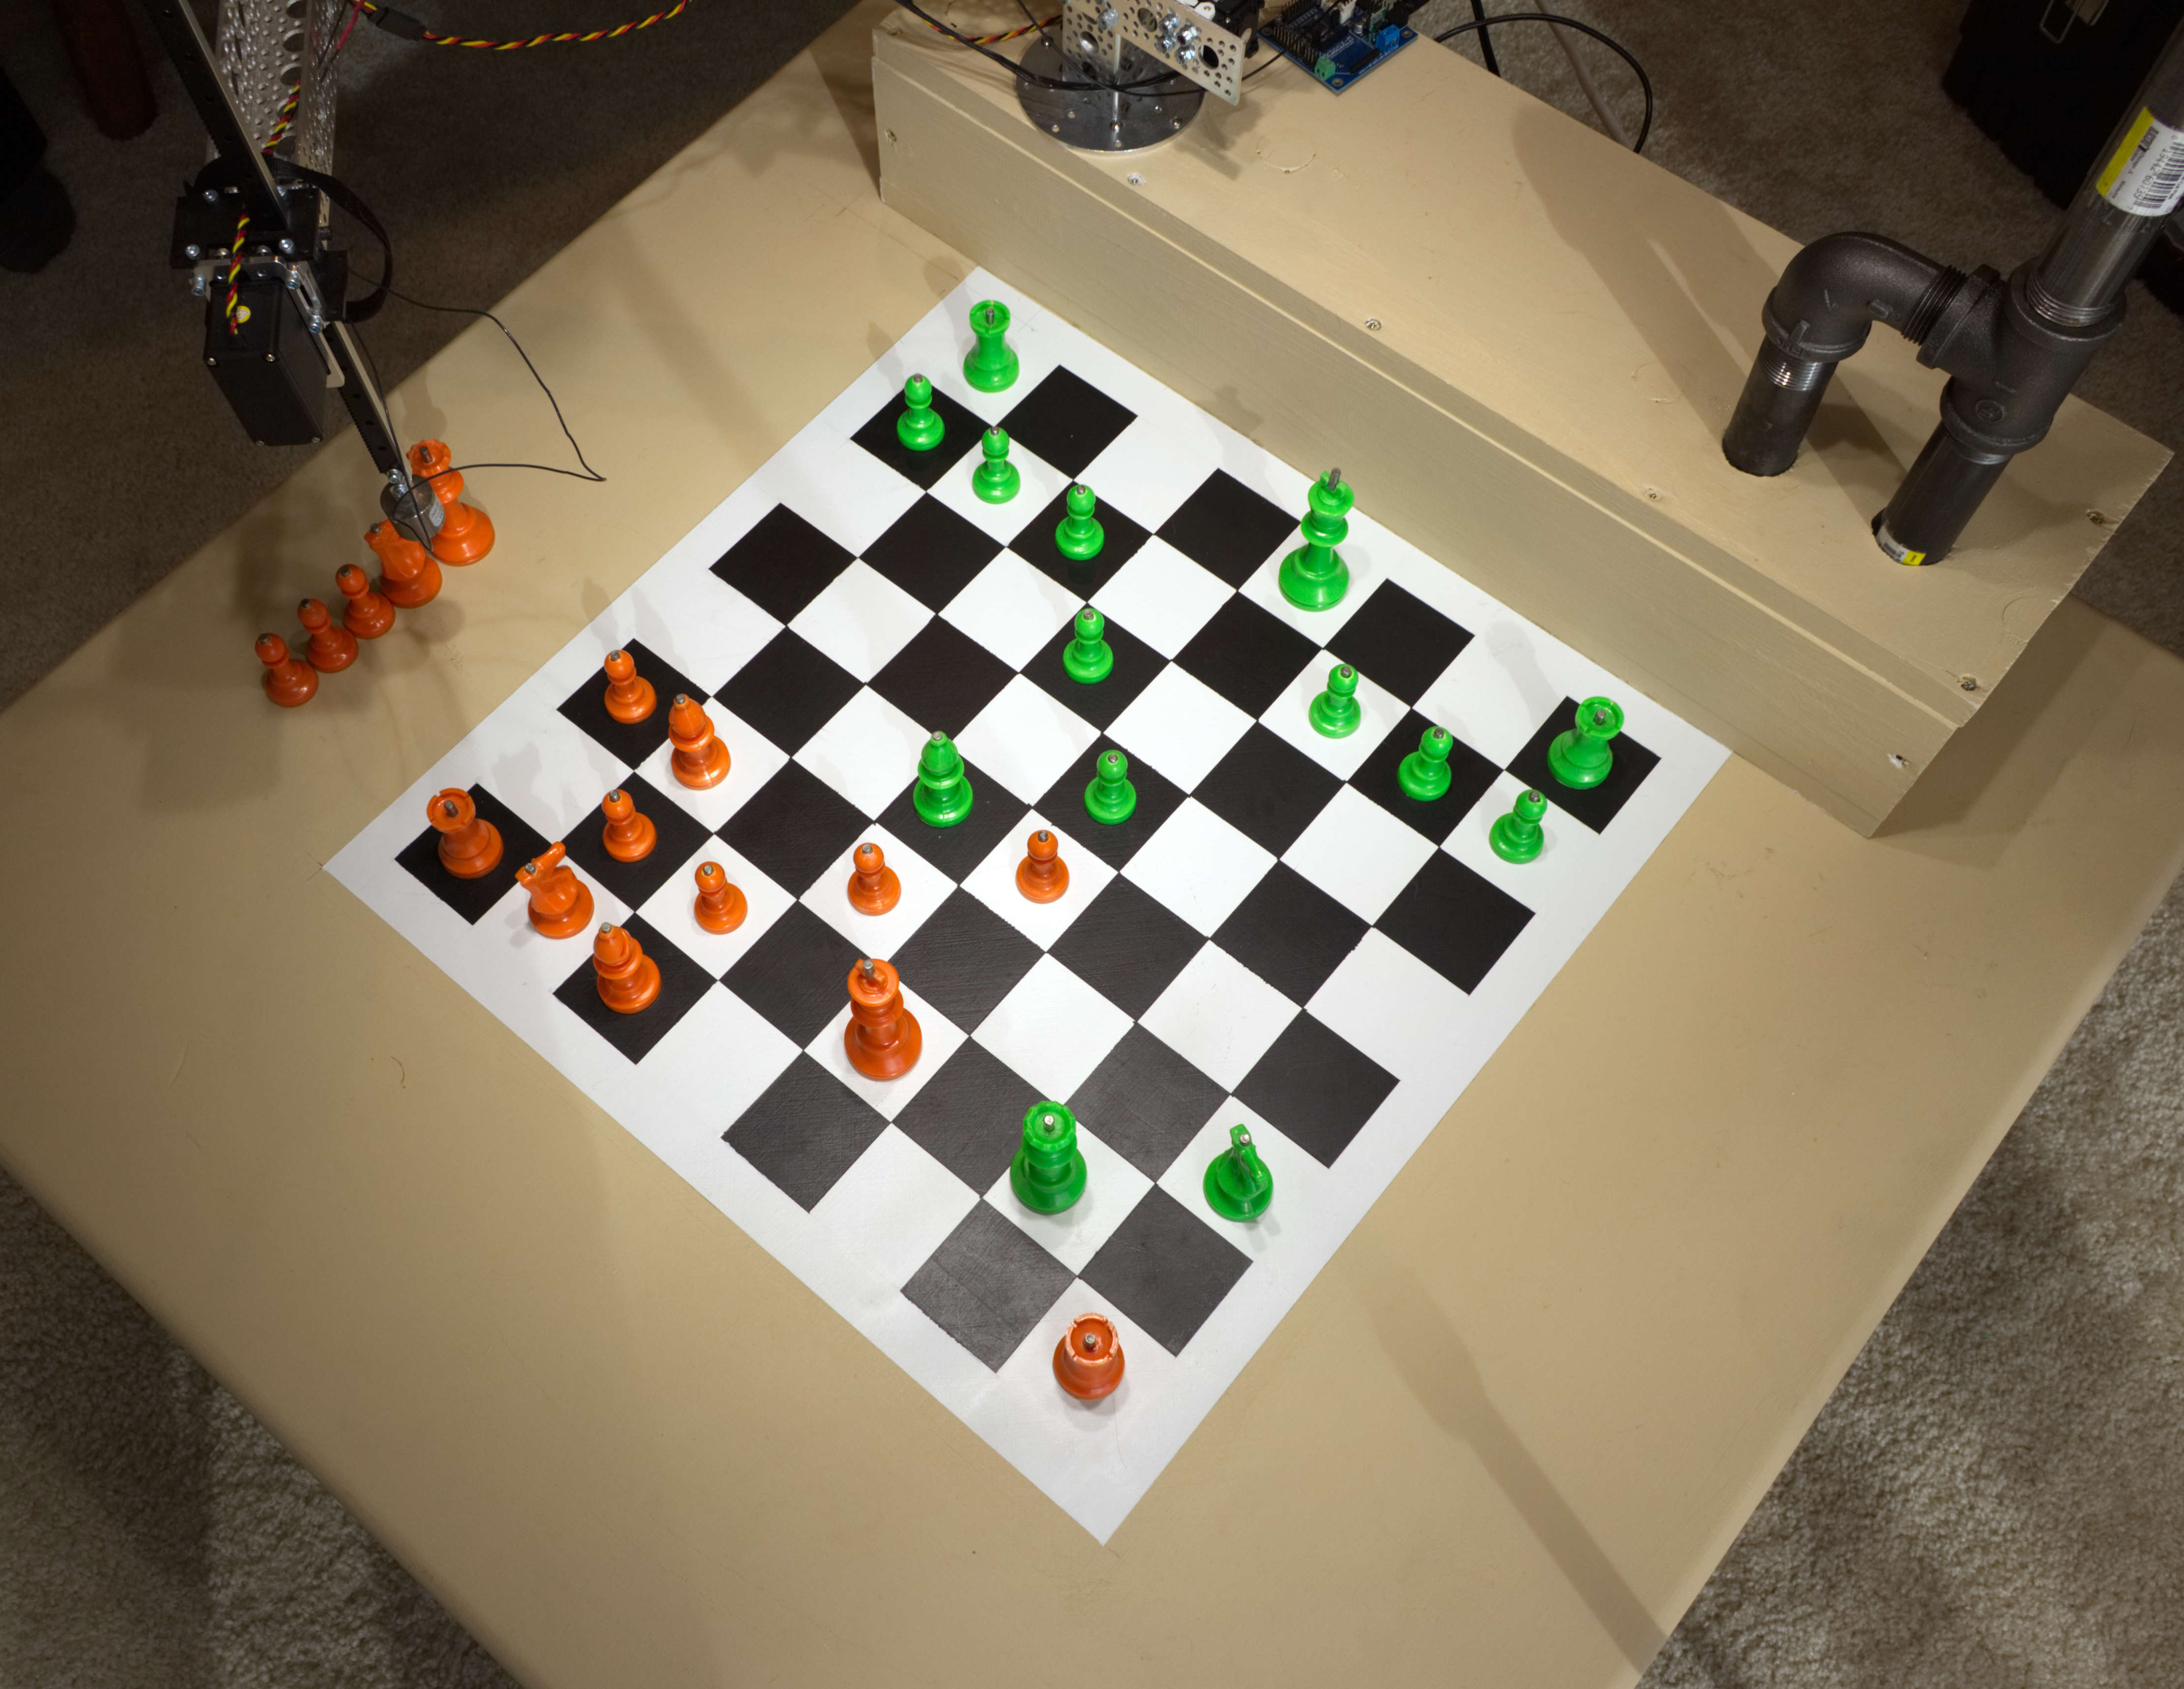 The chessboard on the table.